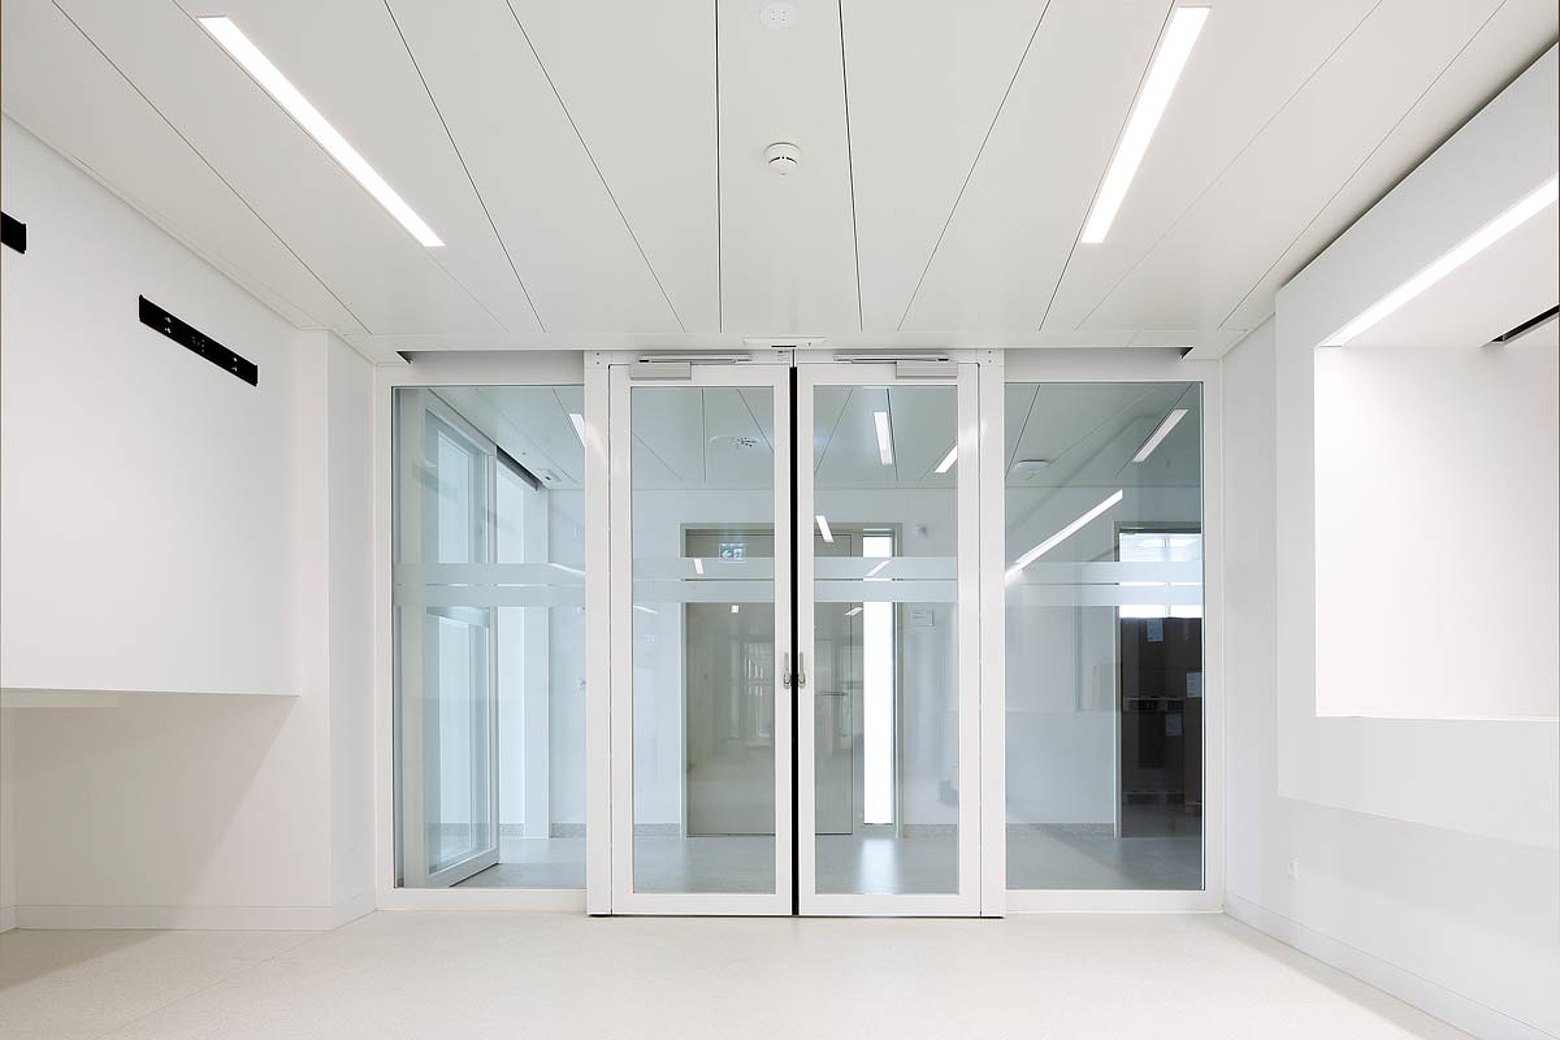 fire-rated double leaf sliding door EI30 with screen abutment and escape route function. Used system: forster fuego light Hospital Münsterlingen, Switzerland